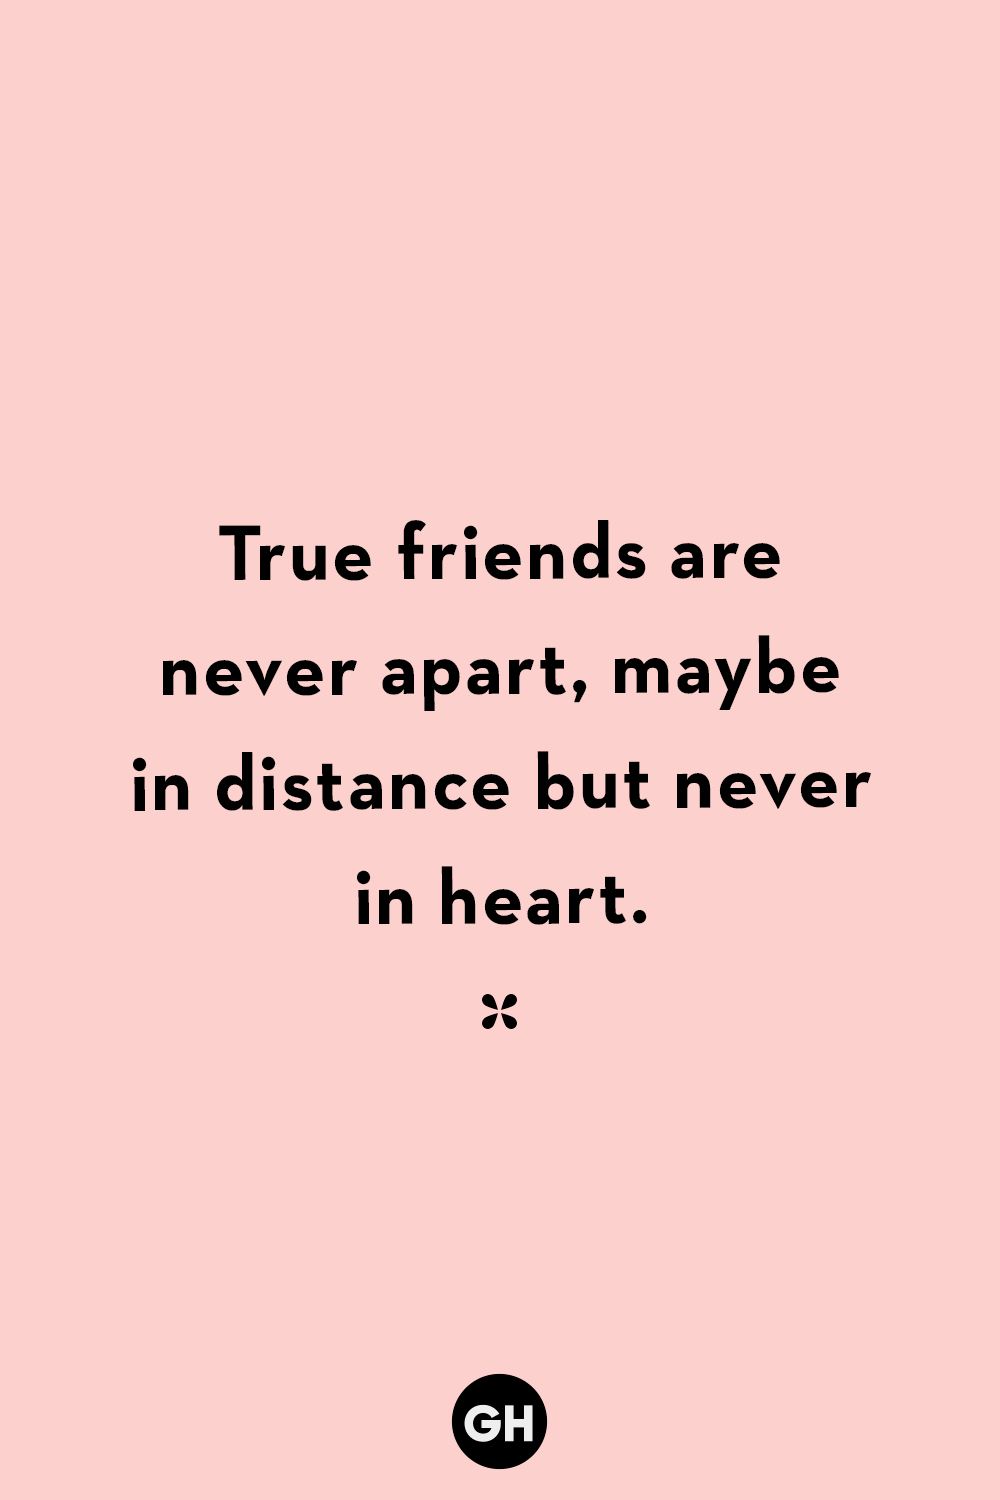 40 Short Friendship Quotes For Best Friends Cute Sayings About Friends Best Friend Quotes Meaningful Cute Quotes For Friends Short Friendship Quotes